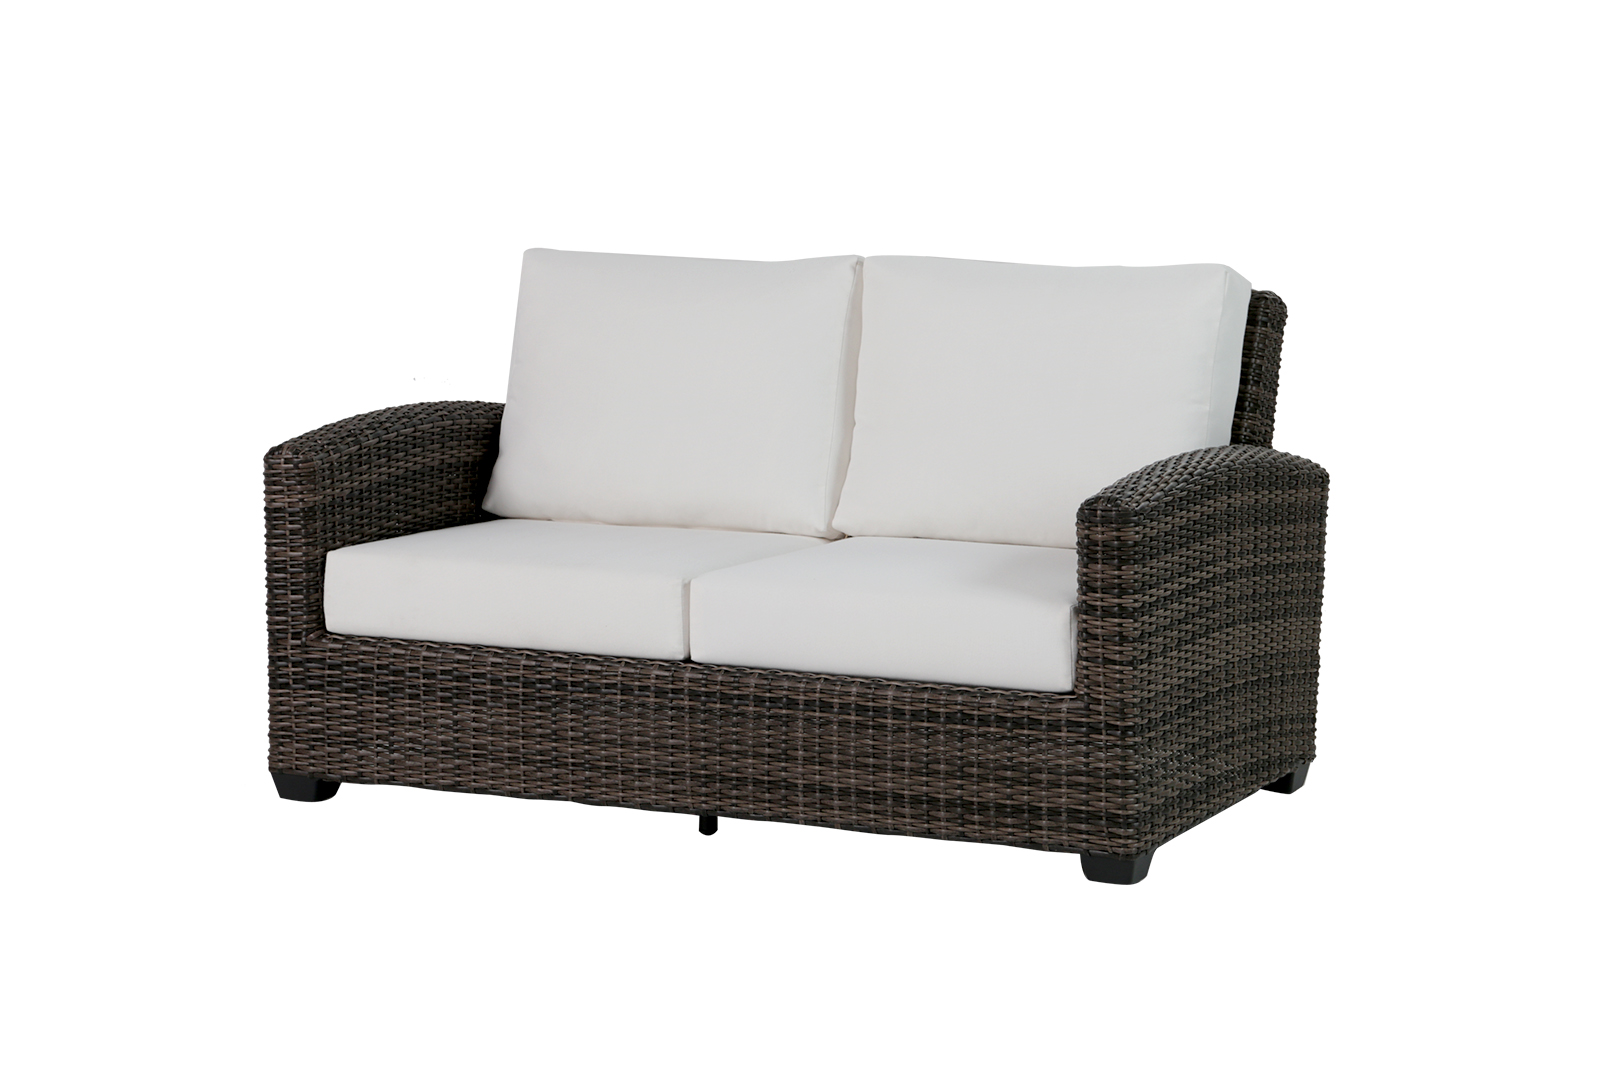 Coral-Gables-Love-Seat